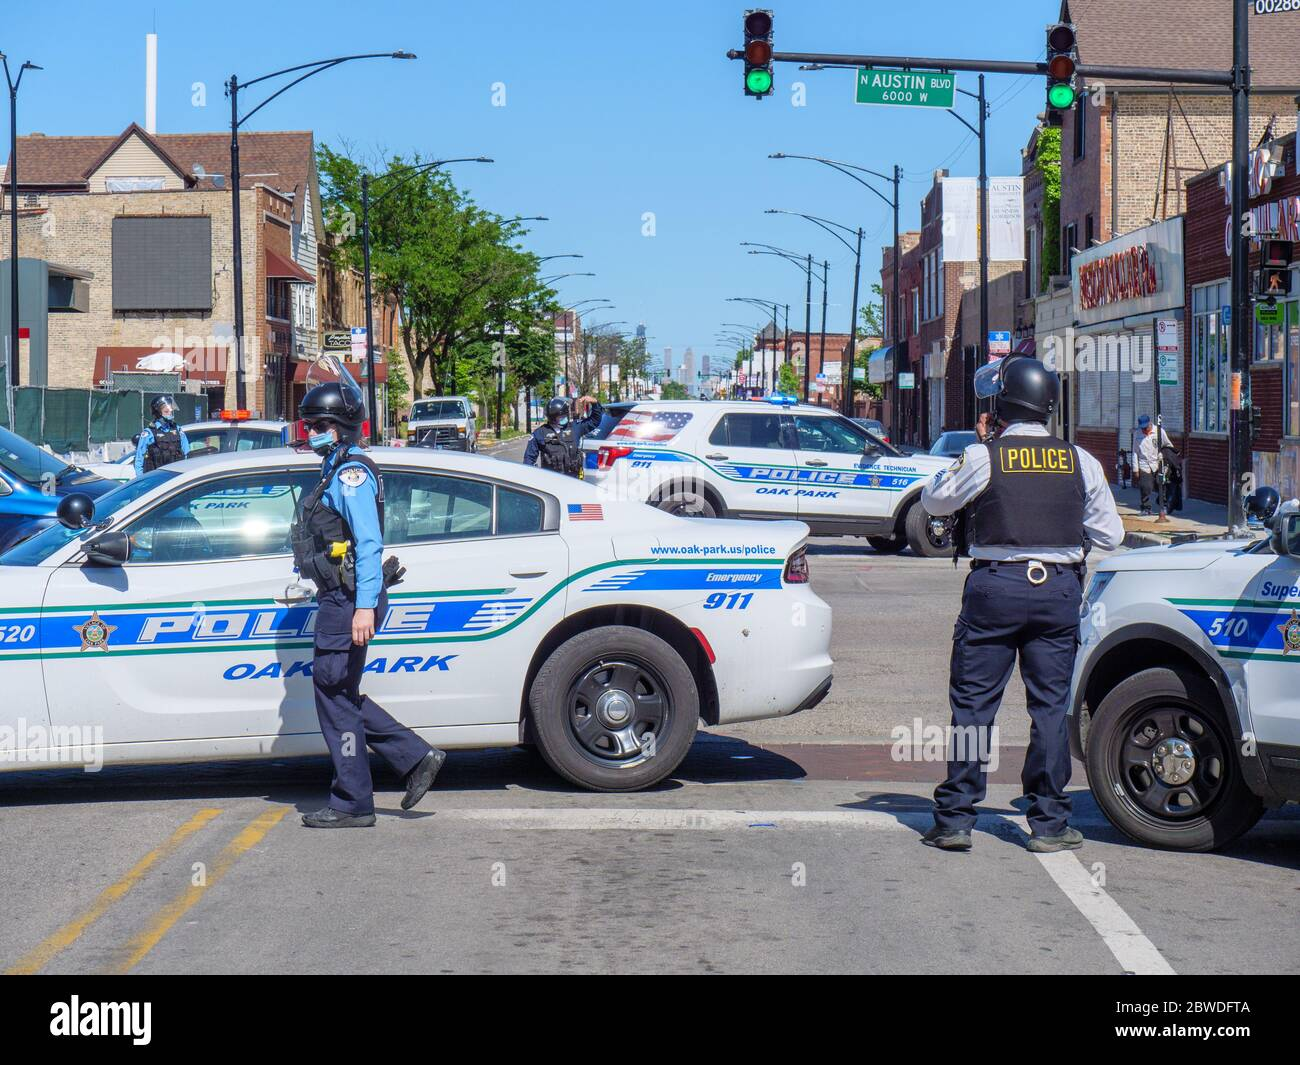 Oak Park, Illinois. 31st August 2020. Oak Park Police officers and vehicles block Chicago Avenue at Austin Boulevard, the border with the City of Chicago. Chicago Police requested closure of the street due to civil unrest resulting from protests of the death of George Floyd, a black man killed by a Minneapolis, Minnesota policeman, who has been charged with murder. This view is to the east from Oak Park into the city. Stock Photo